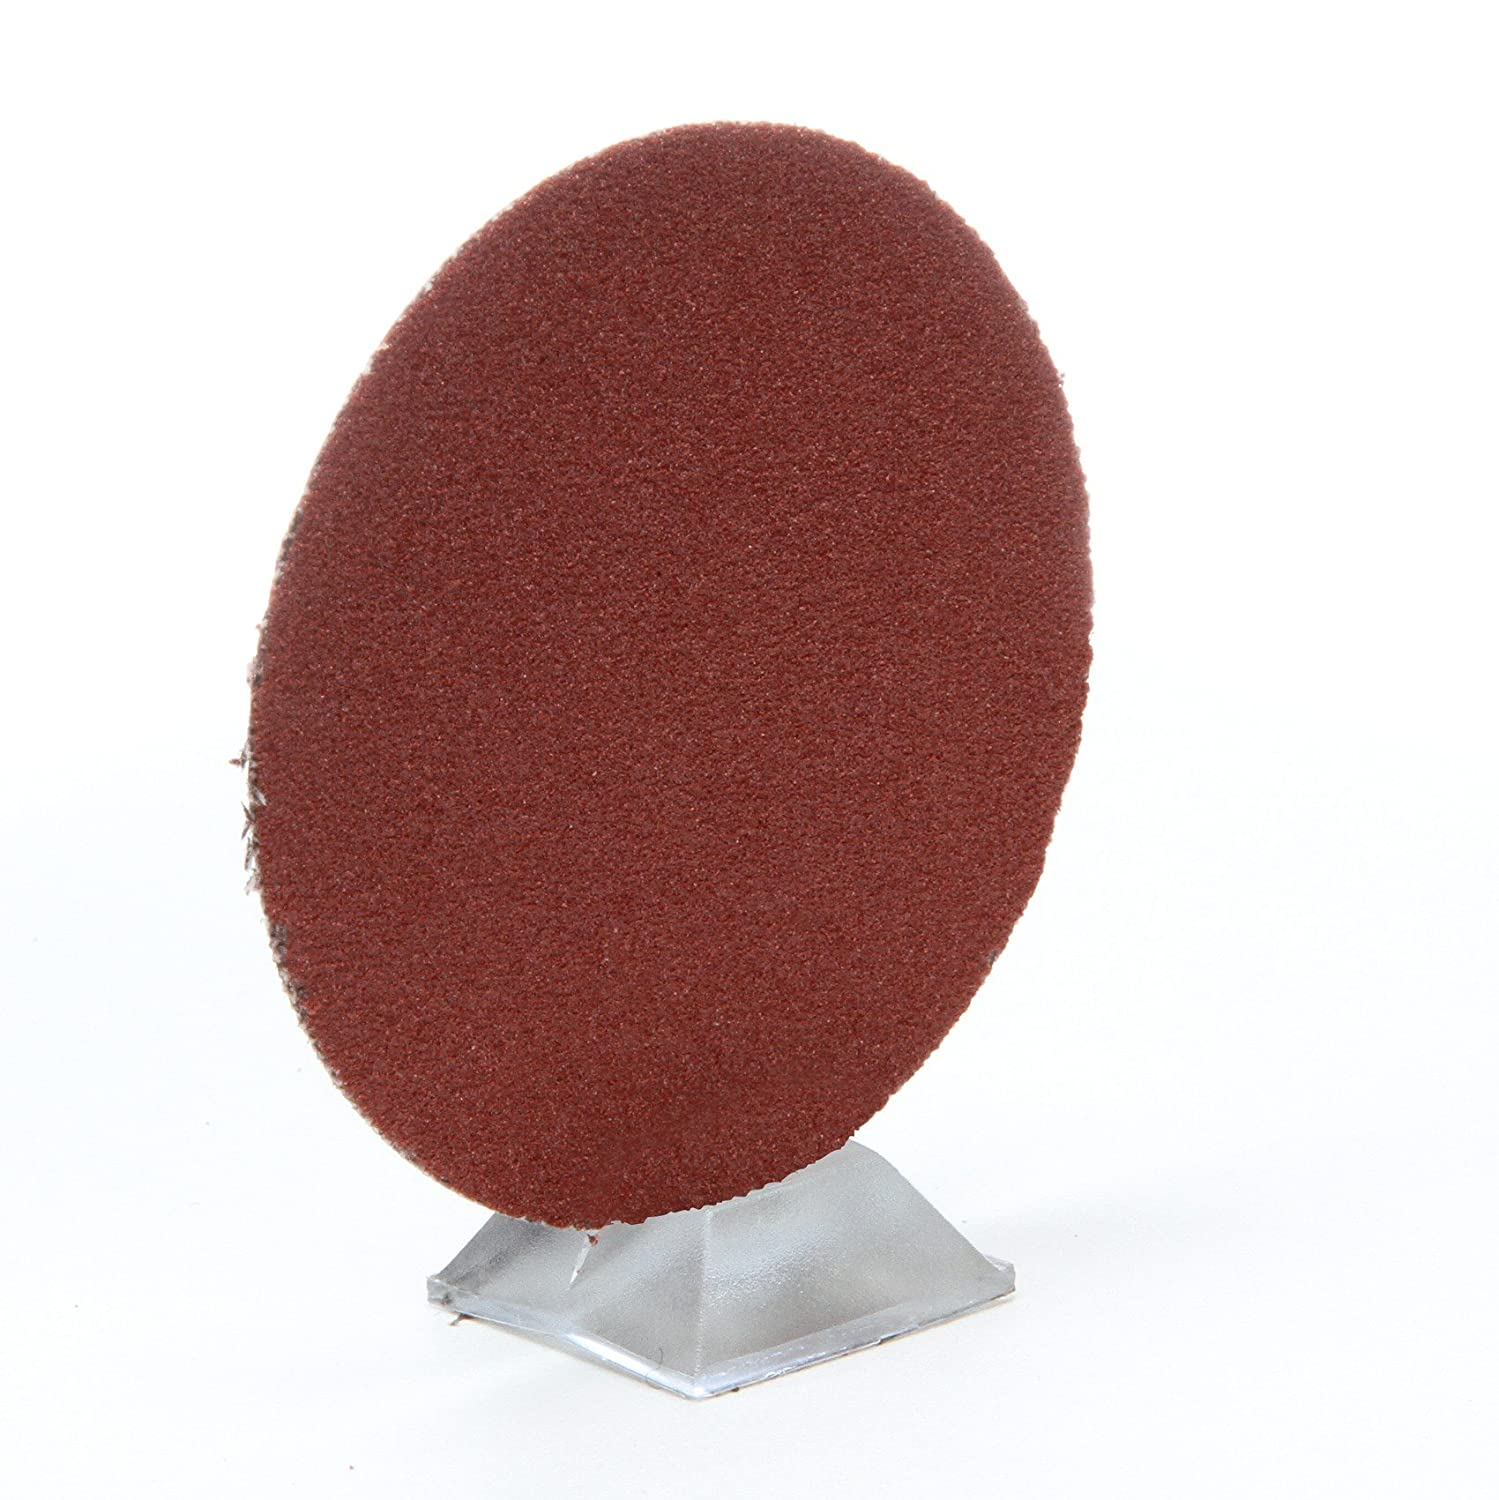 Ceramic Grain 36 Grit 3M Roloc Disc 963G TR Pack of 50 1-1//2 Diameter YN Weight Polyester Cloth Wet//Dry